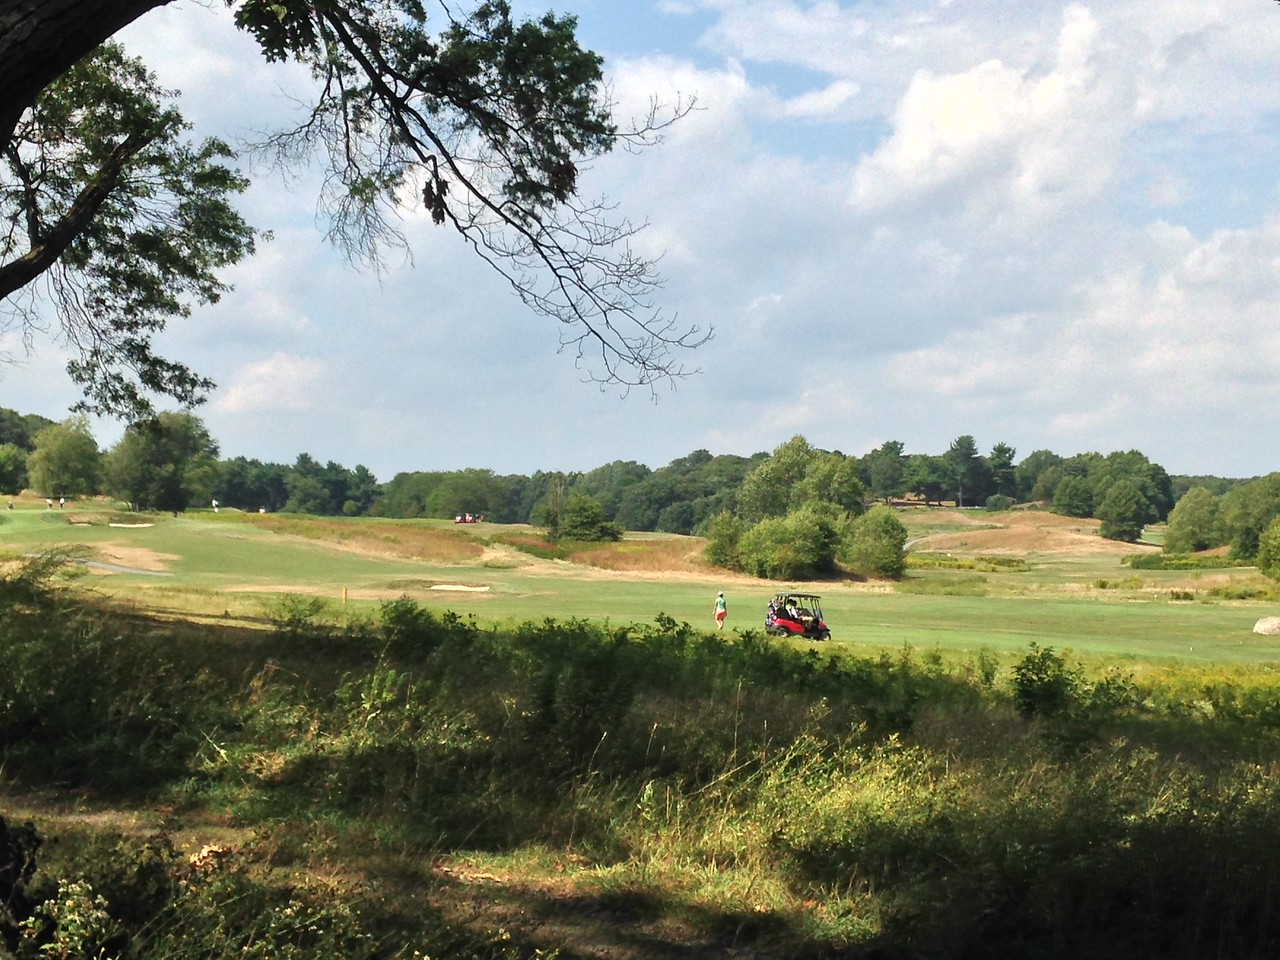 Golf course in Franklin Park.